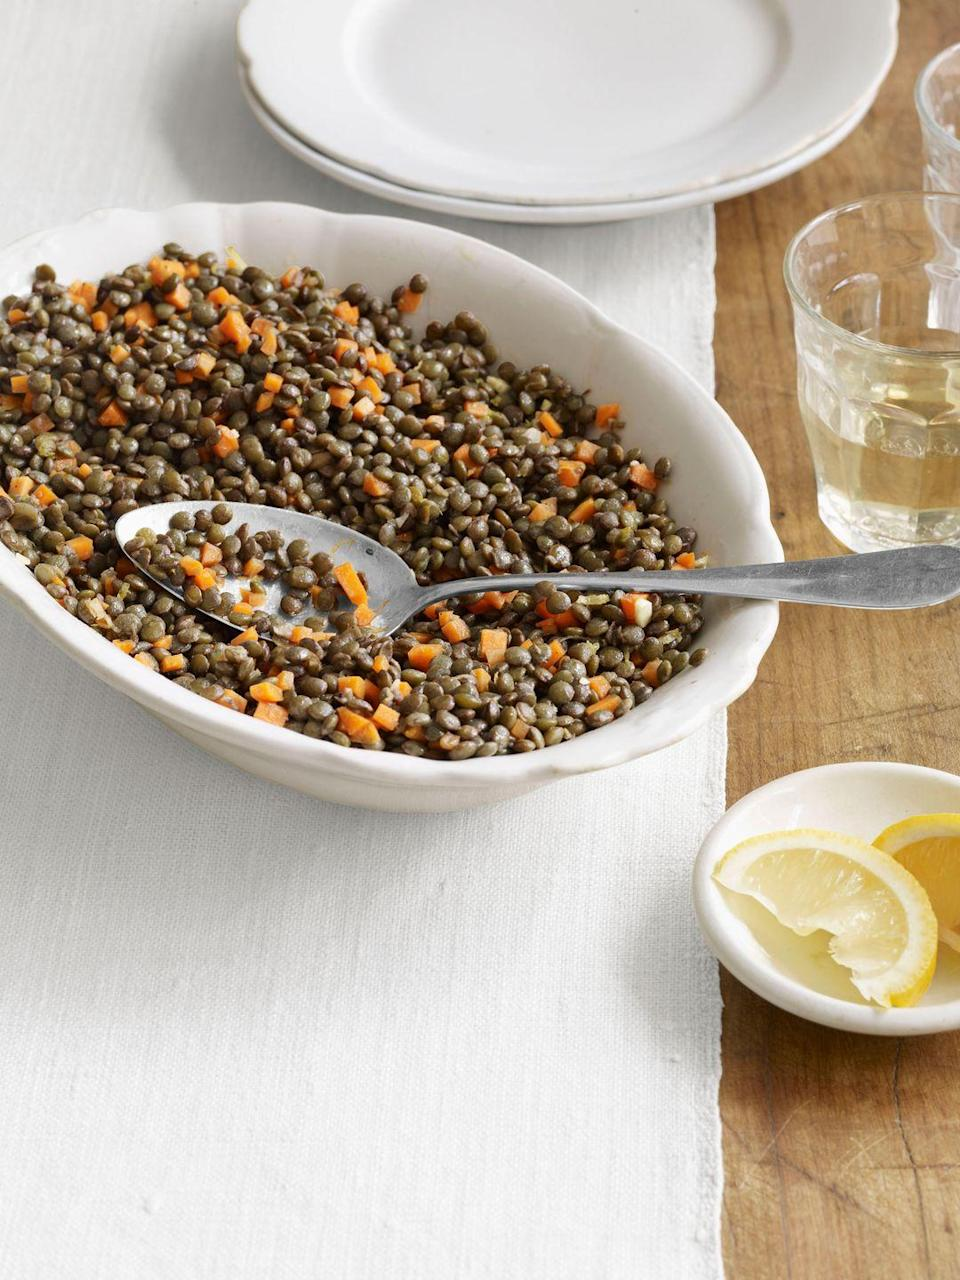 "When many people think of French cuisine, they think of complicated plates covered in lots of butter, cheese, and other fatty foods. But much traditional French food, like this lentil recipe, is light, healthy, and incredibly simple. <a href=""https://www.countryliving.com/food-drinks/recipes/a3648/french-lentil-salad-recipe-clx0411/"" rel=""nofollow noopener"" target=""_blank"" data-ylk=""slk:Get the recipe."" class=""link rapid-noclick-resp""><strong>Get the recipe.</strong></a>"